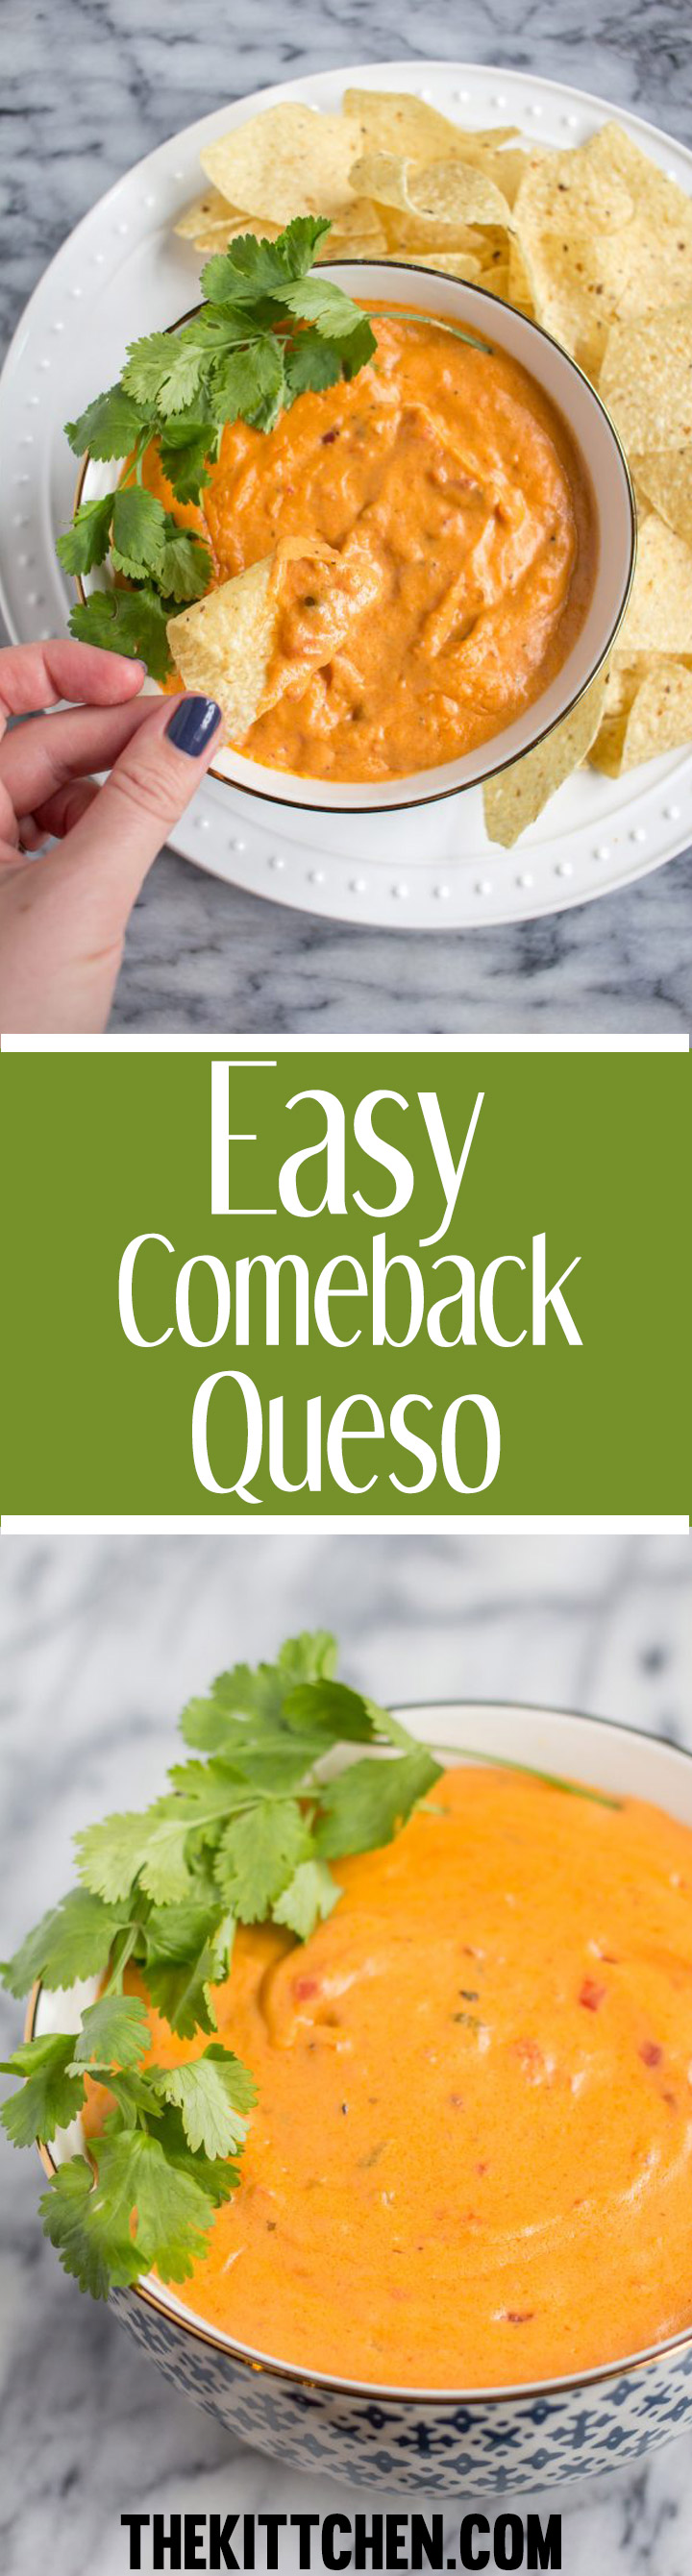 How to make Comeback Queso - a queso seasoned with comeback sauce seasonings.